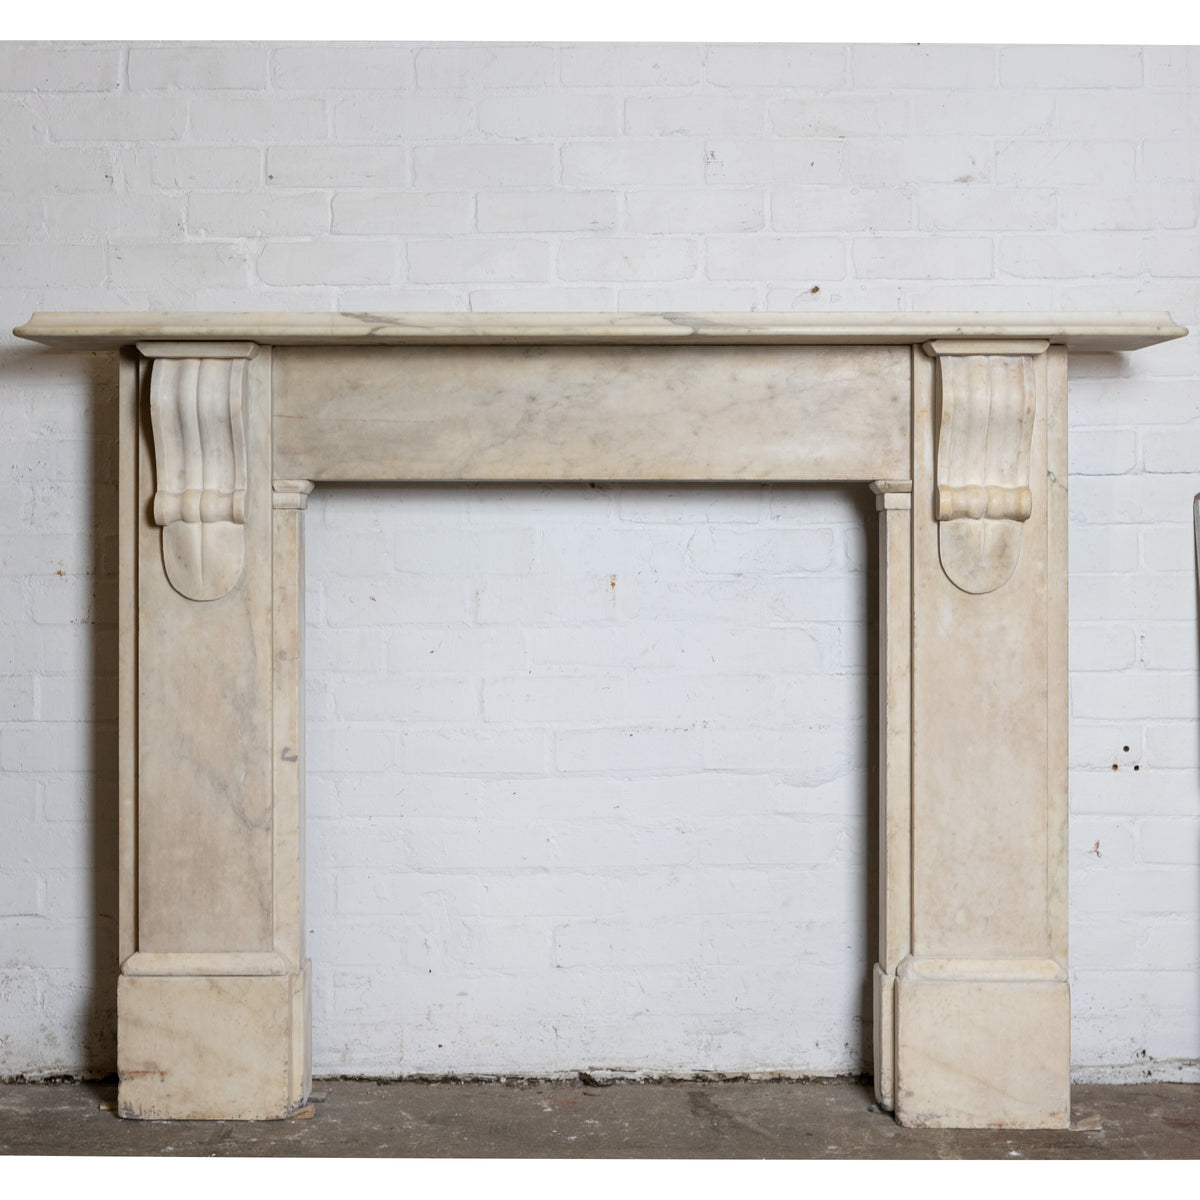 Antique Victorian Statuary Marble Corbel Chimneypiece | The Architectural Forum